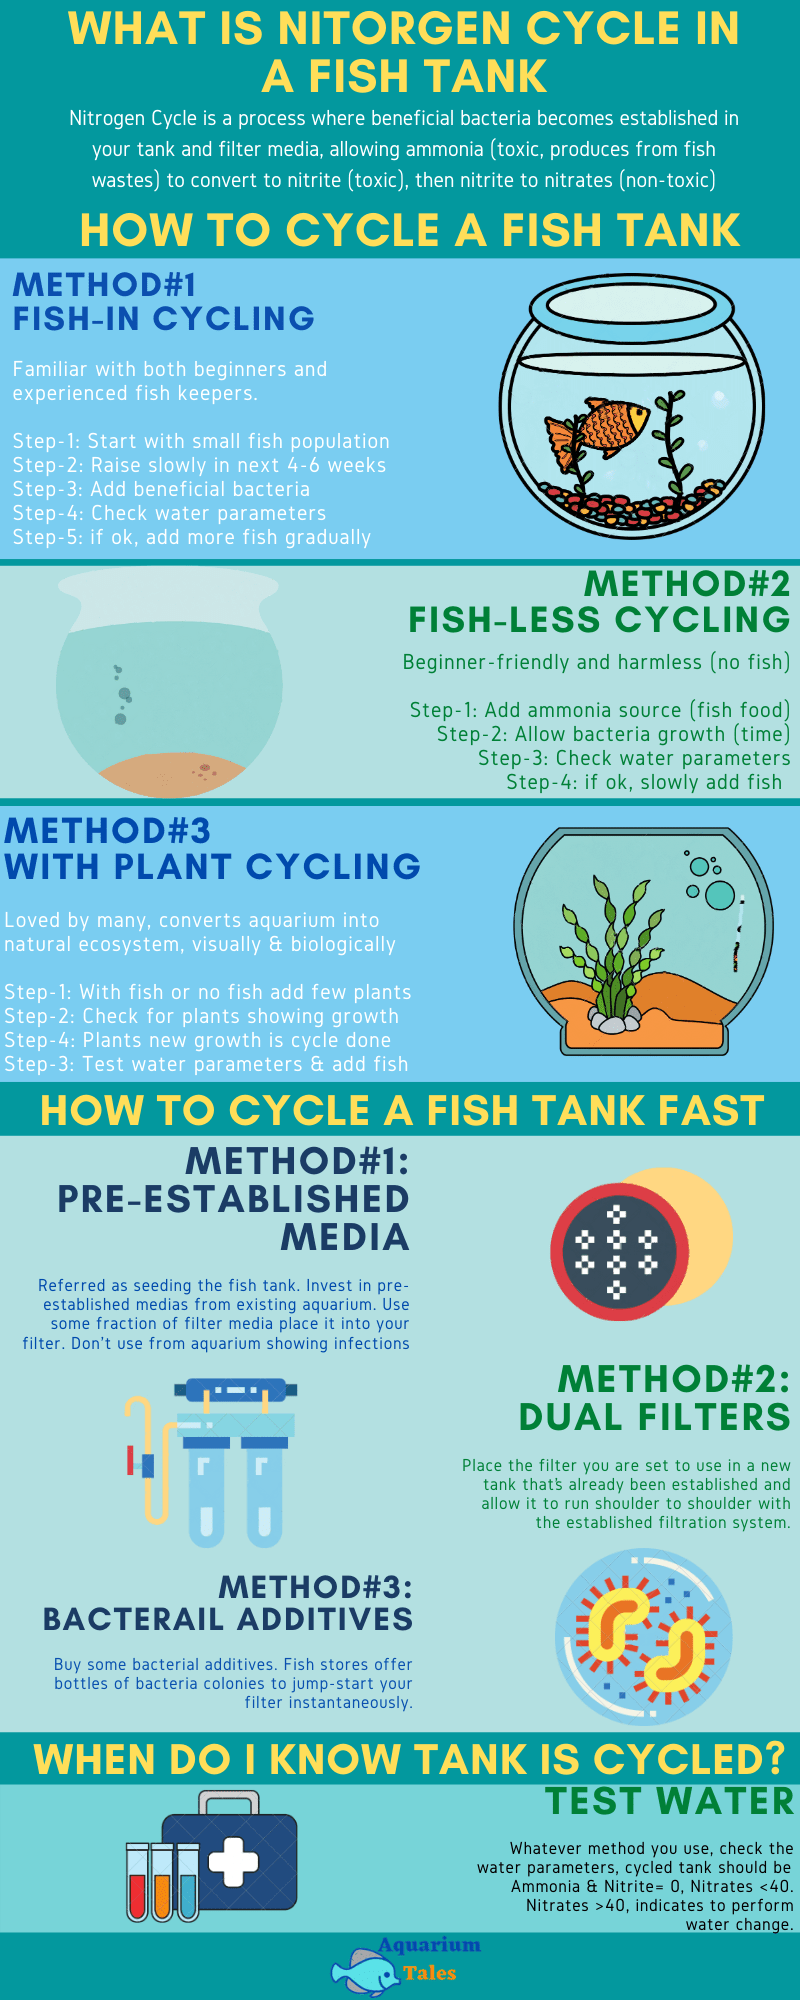 What is nitrogen cycle in a fish tank_